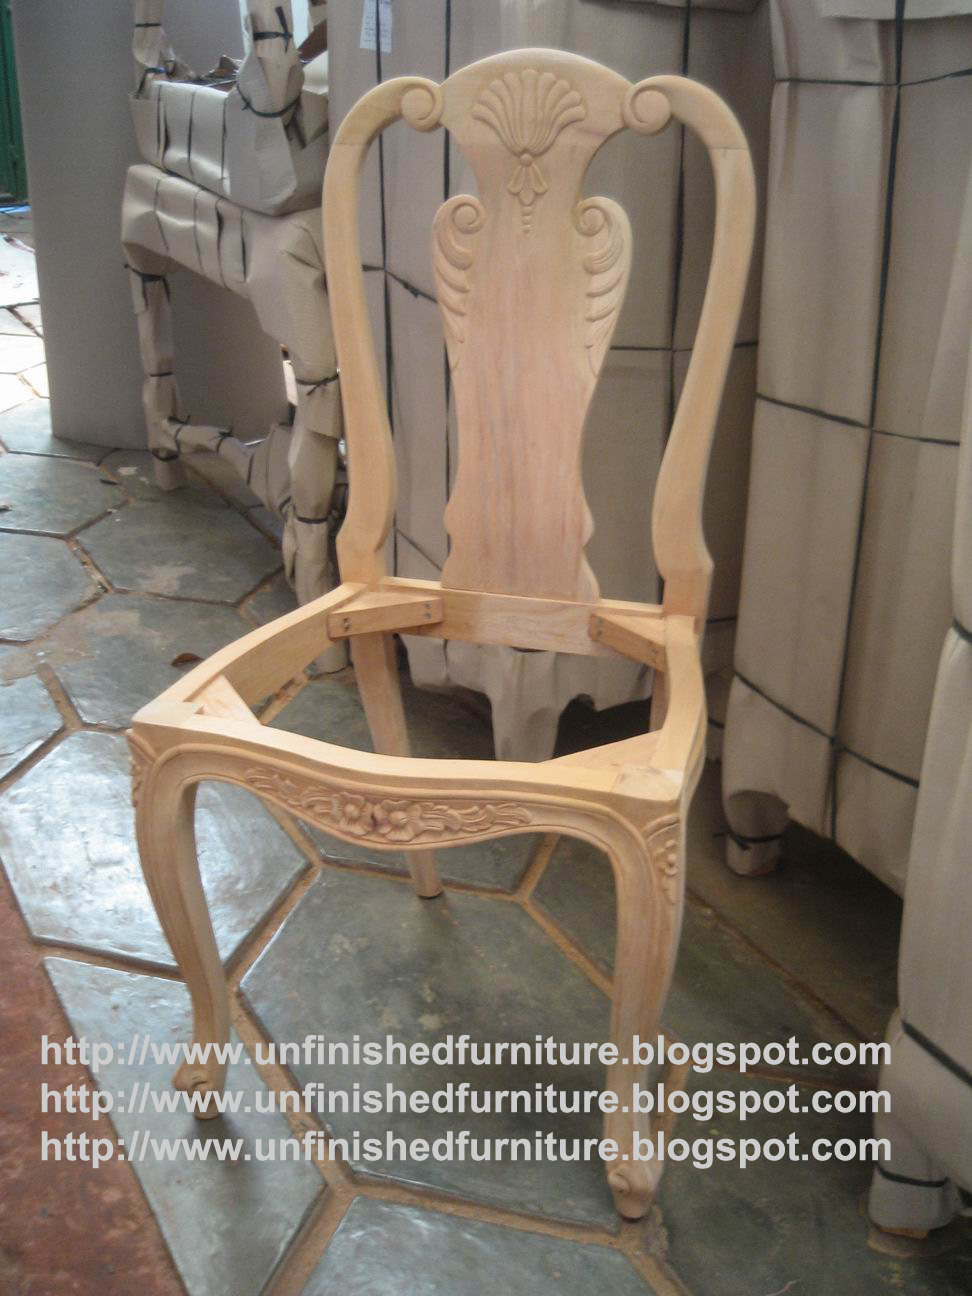 Unfinished Wood Furniture Legs & Unfinished Wood Furniture Legs - Laura Williams islam-shia.org